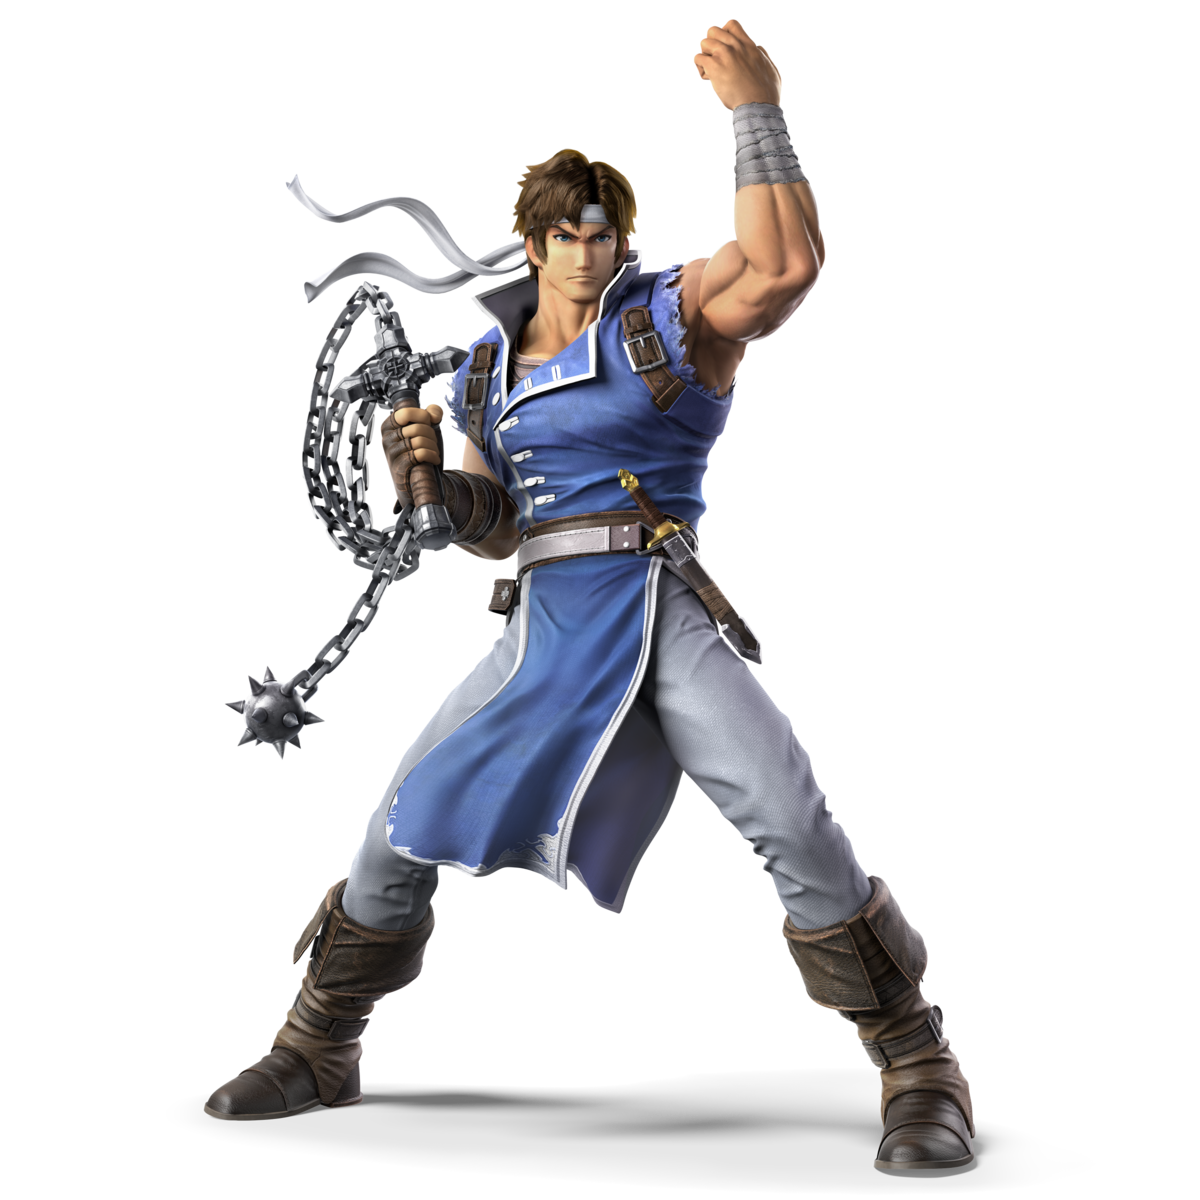 Castlevania chain whip clipart banner freeuse stock Richter (SSBU) - SmashWiki, the Super Smash Bros. wiki banner freeuse stock